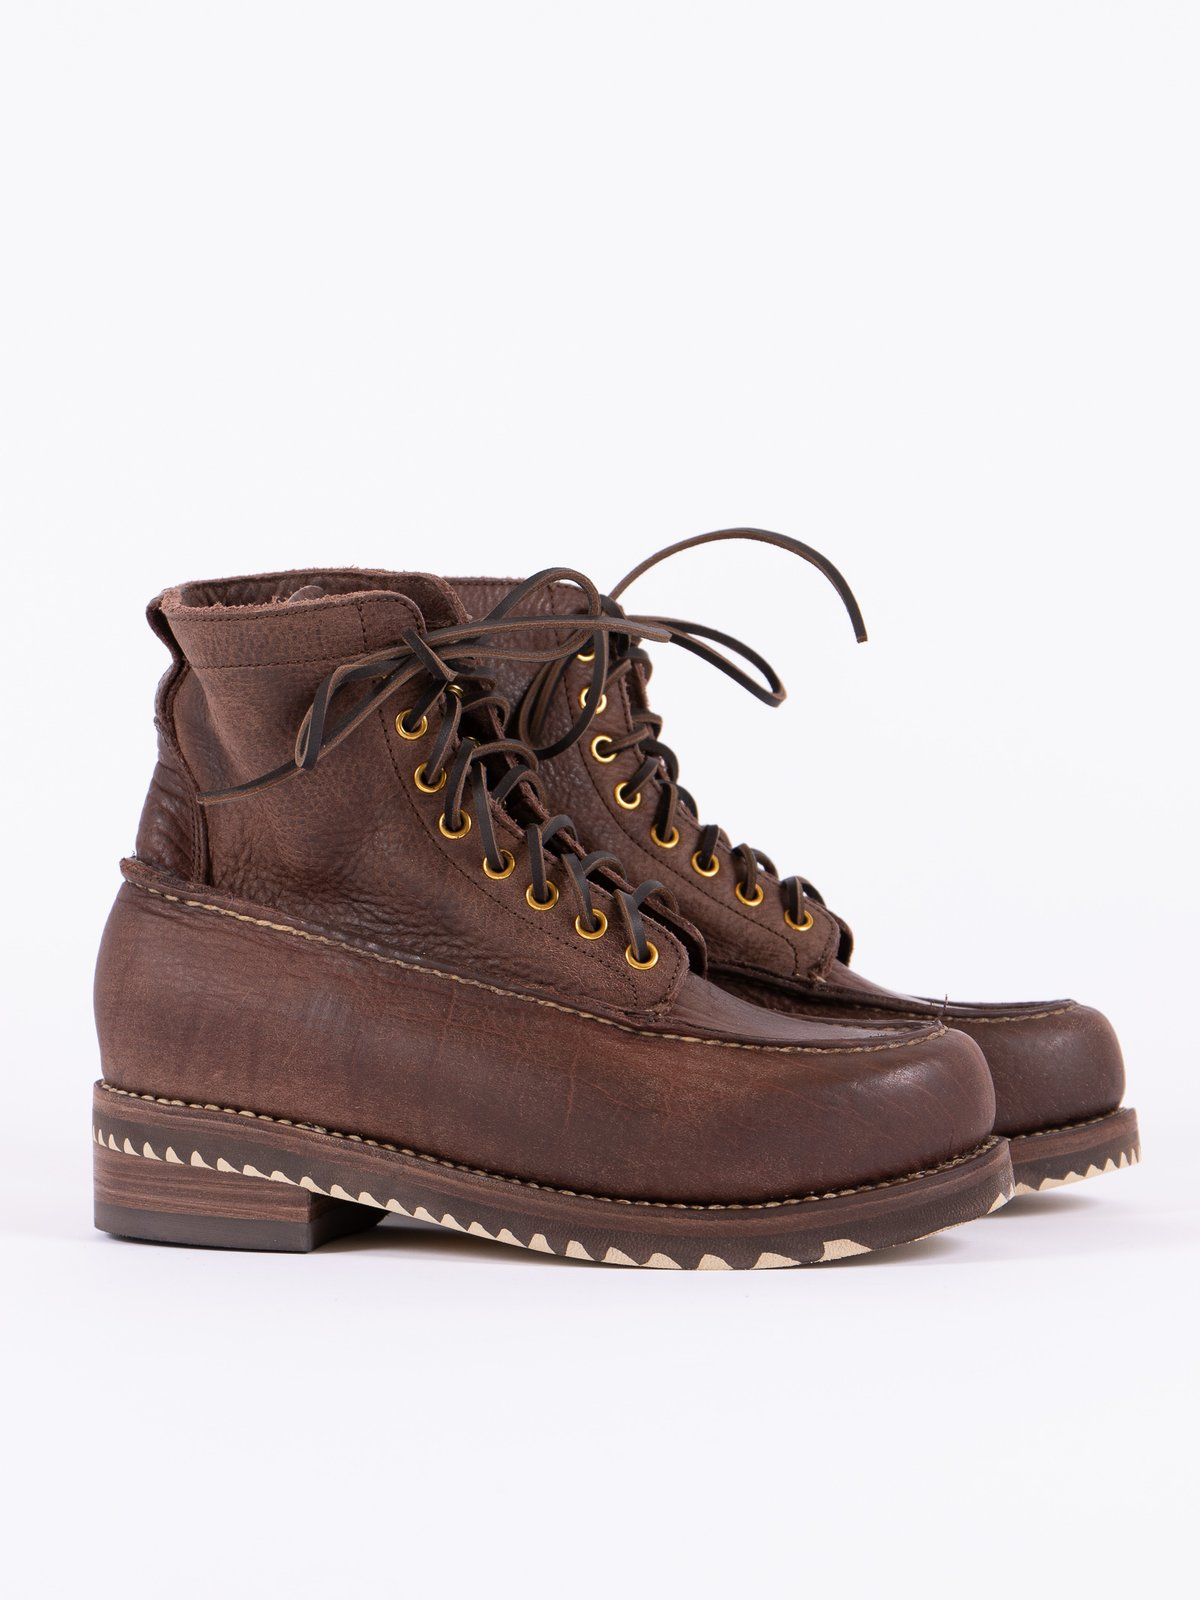 Dark Brown Kainai Moc Toe–Folk - Image 1